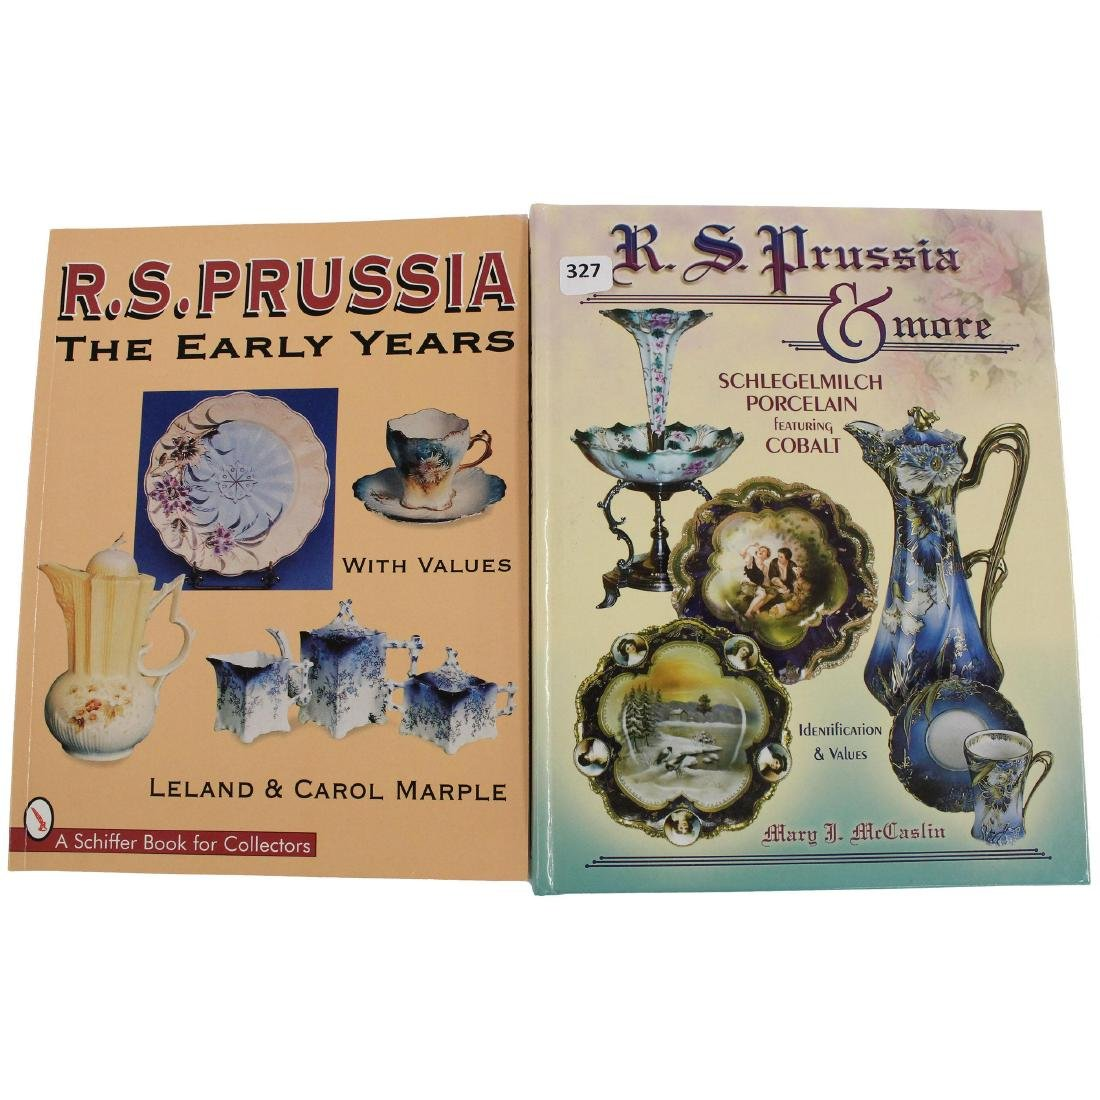 (2) Books About R.S. Prussia and Related Items